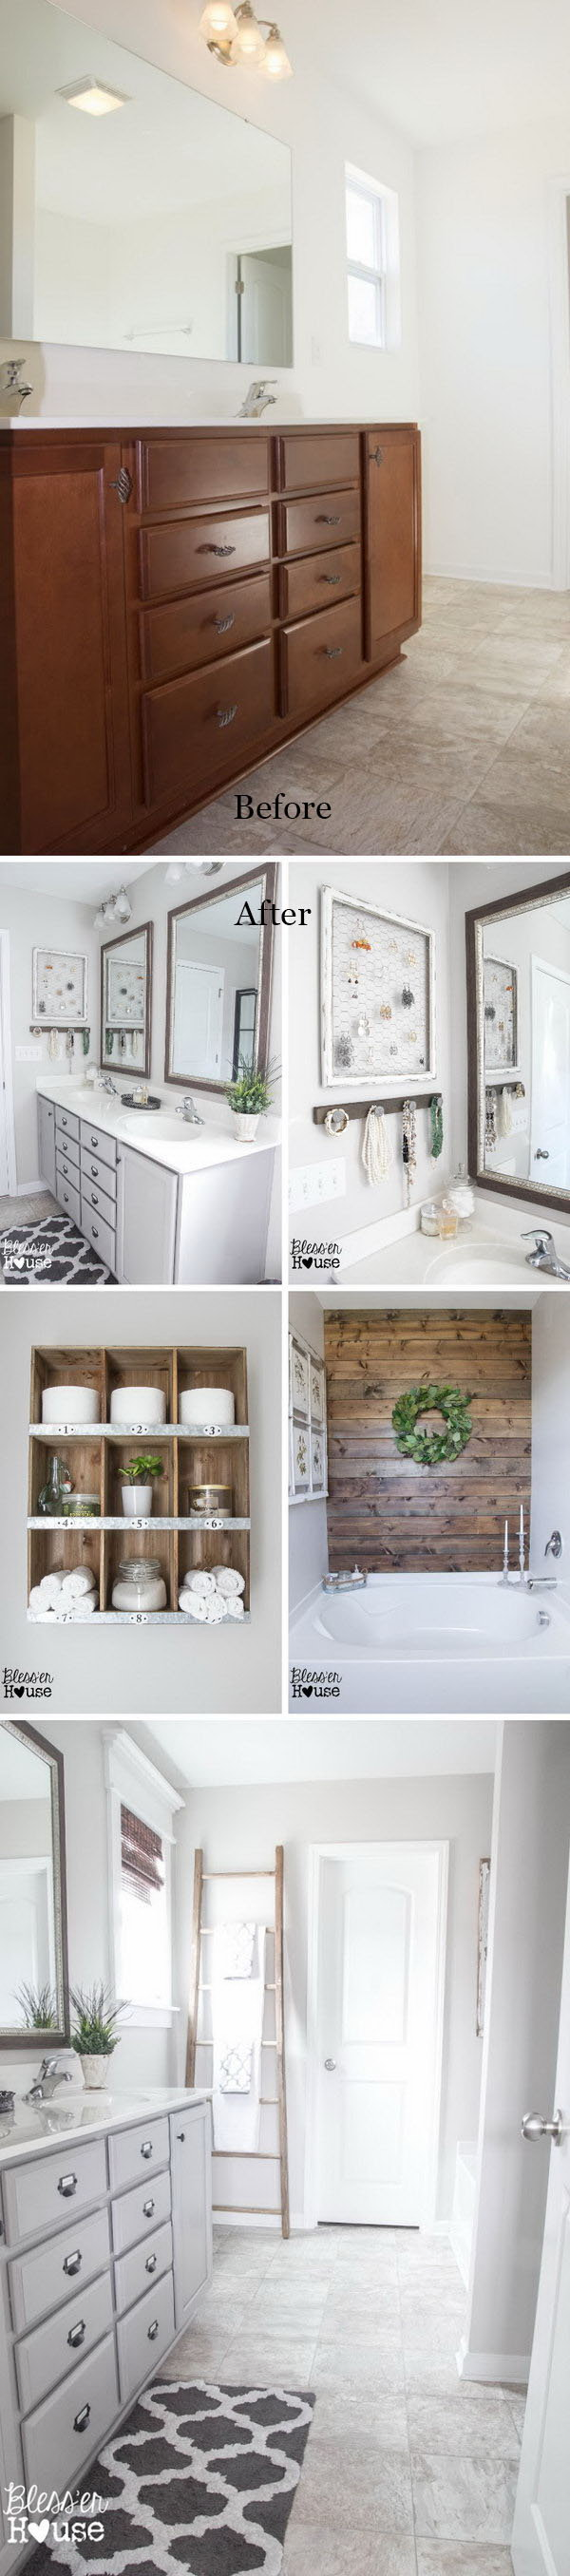 Before And After Awesome Bathroom Makeovers Hative - Budget bathroom remodel before and after